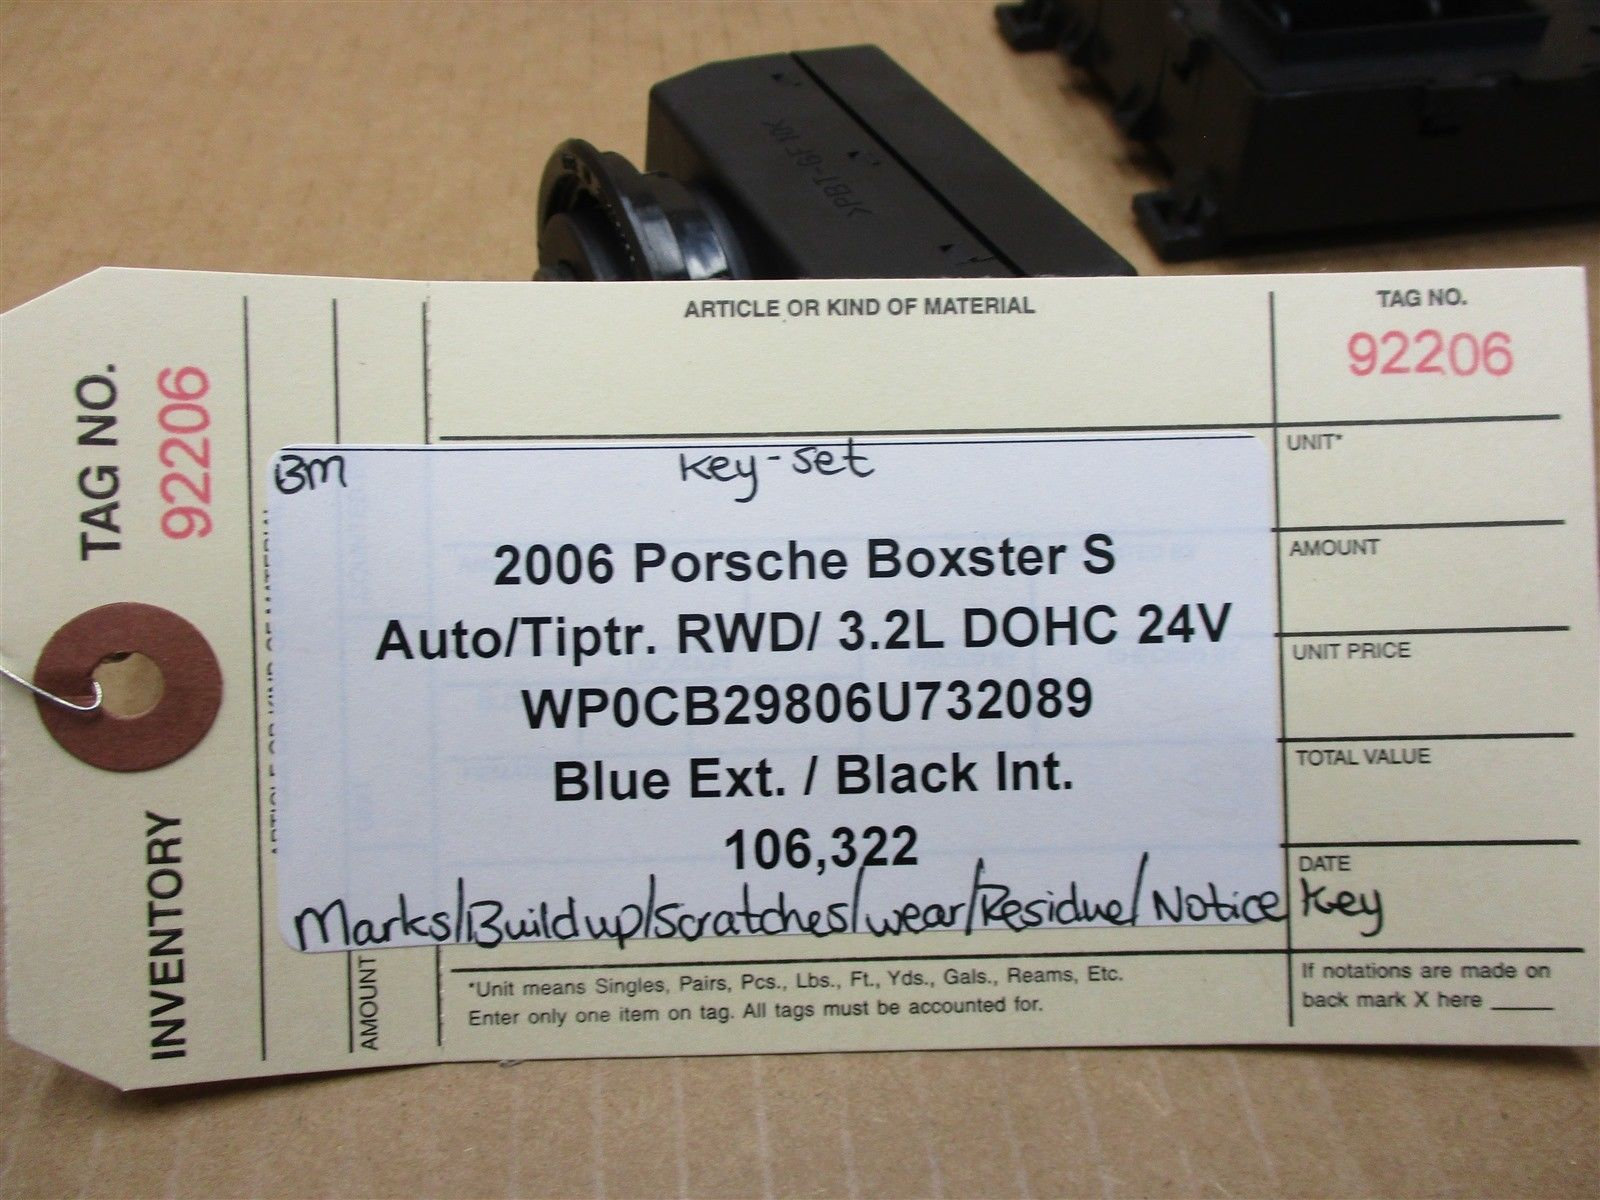 06 Boxster S Porsche 987 KEY IMMOBILISER SET 99761817212 ENGINE COMPUTER 106,322